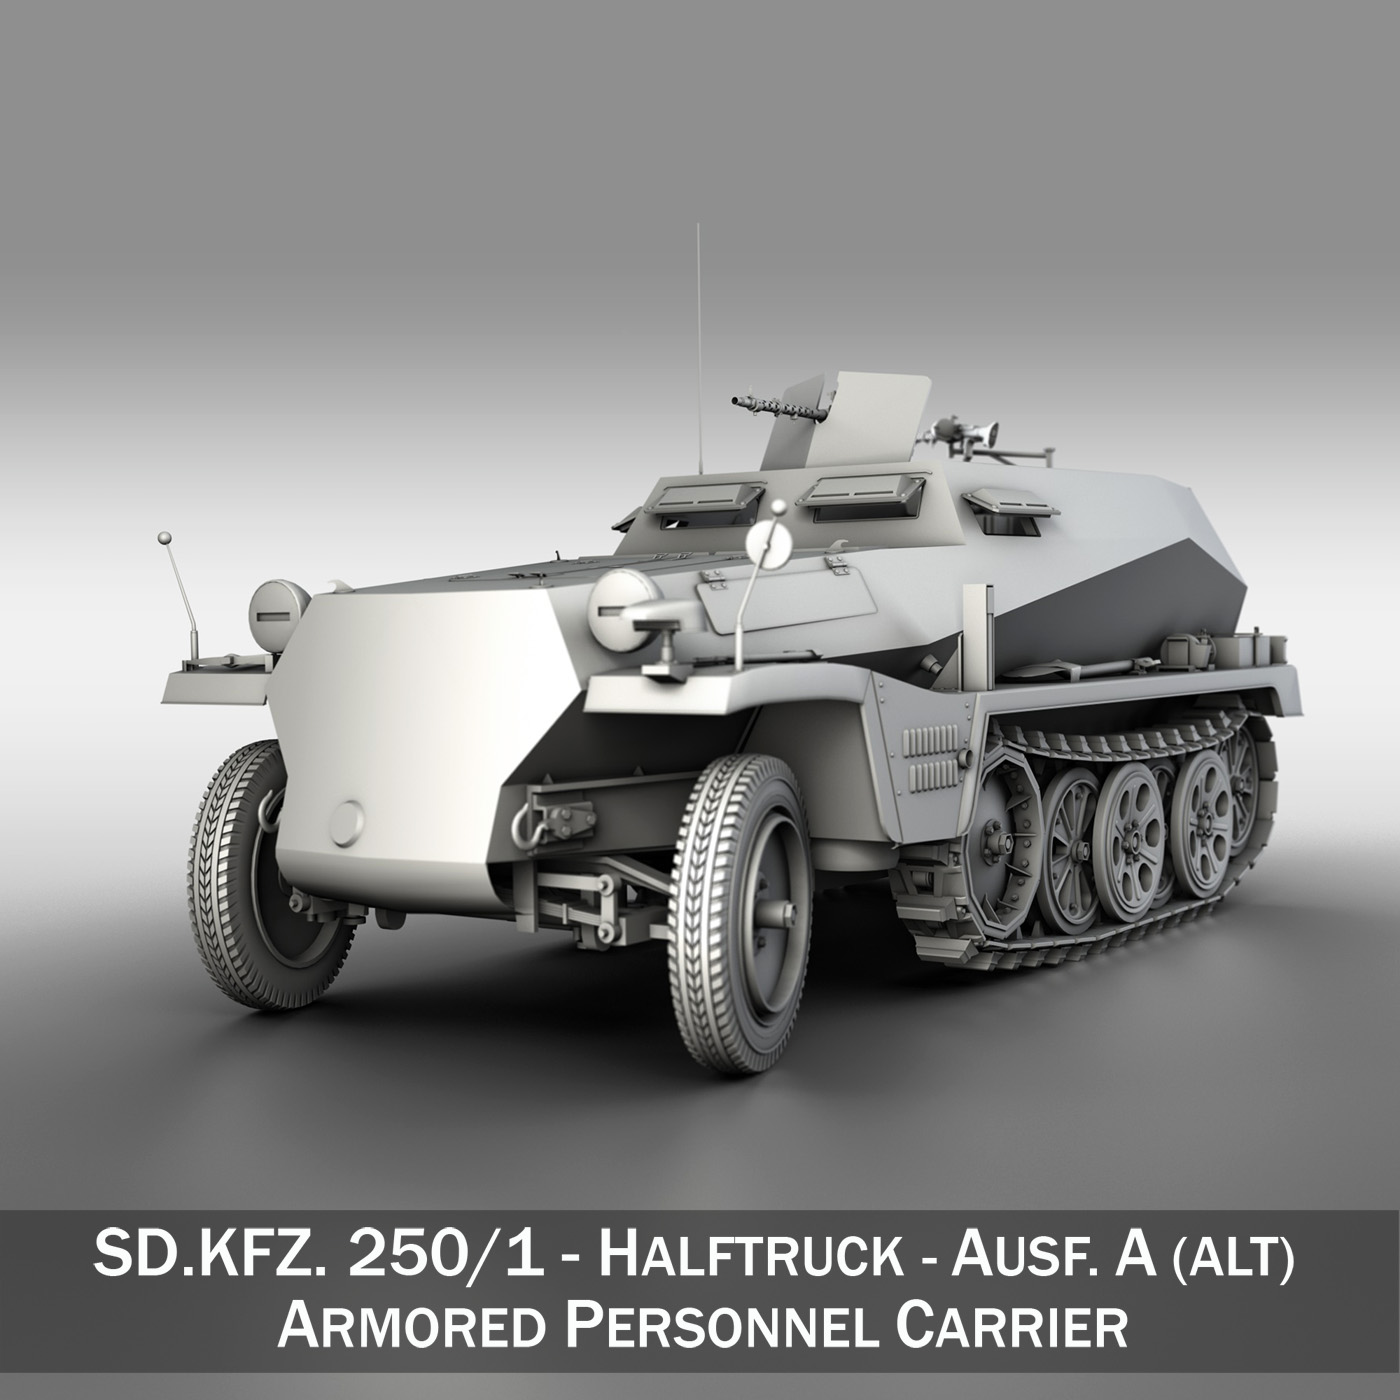 sd.kfz 250 – german halftruck 3d model 3ds fbx c4d lwo obj 251713